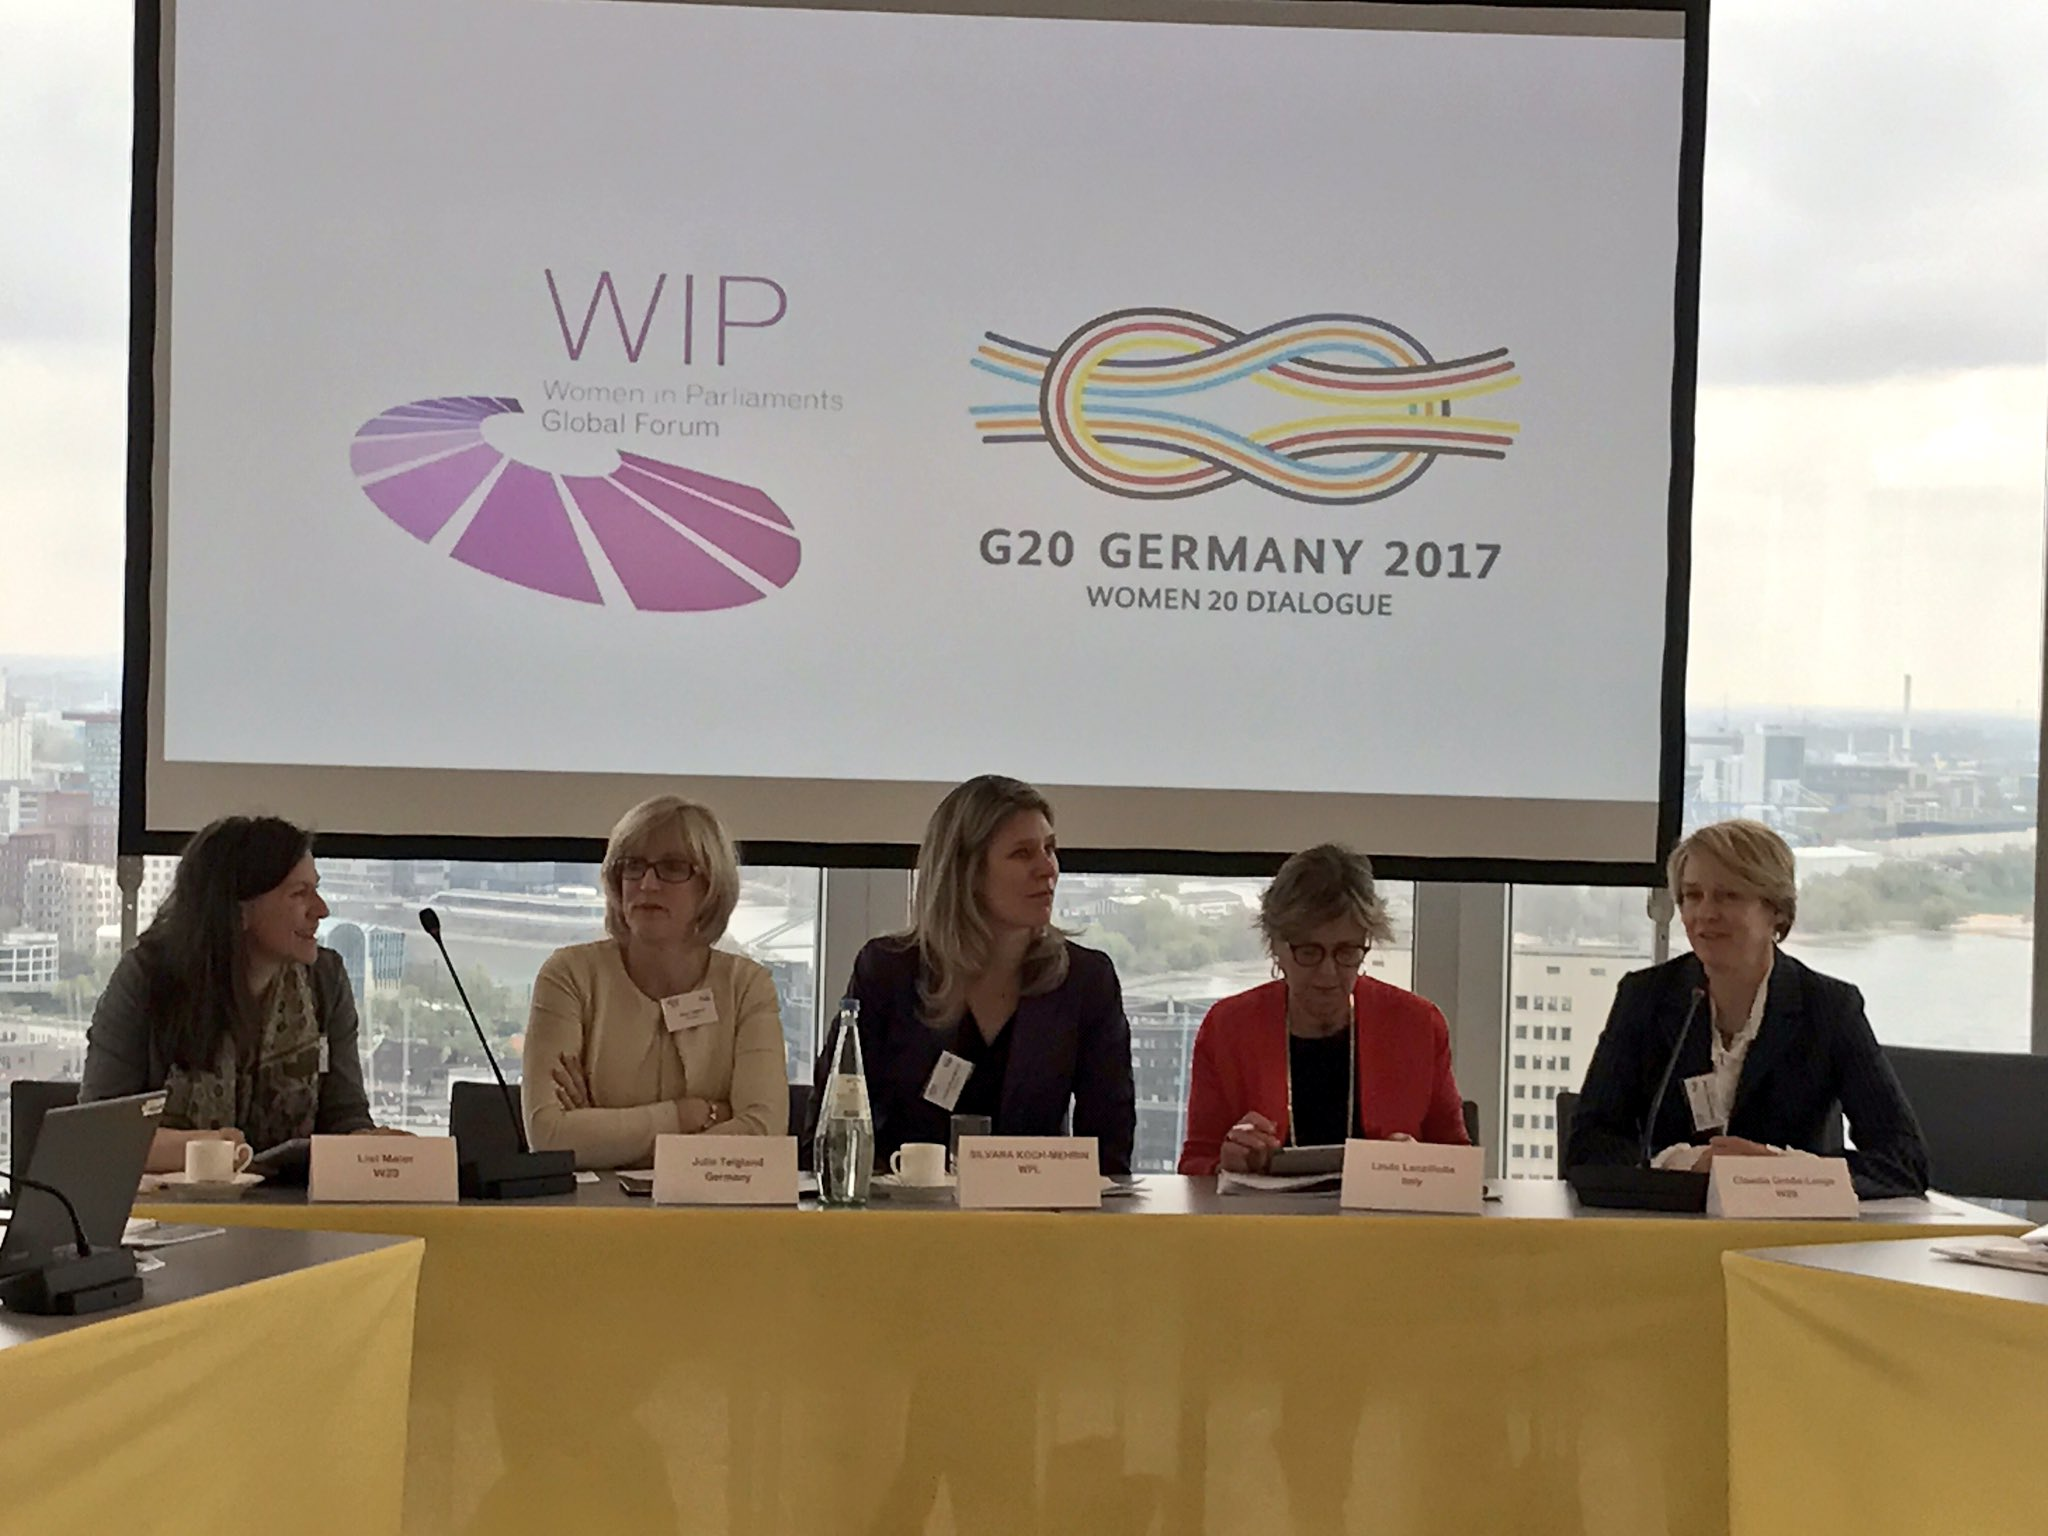 Great to be joined by both @Frauenrat and @VdU_eV, the driving forces and co-chairs behind #w20germany https://t.co/P8P3j668uW